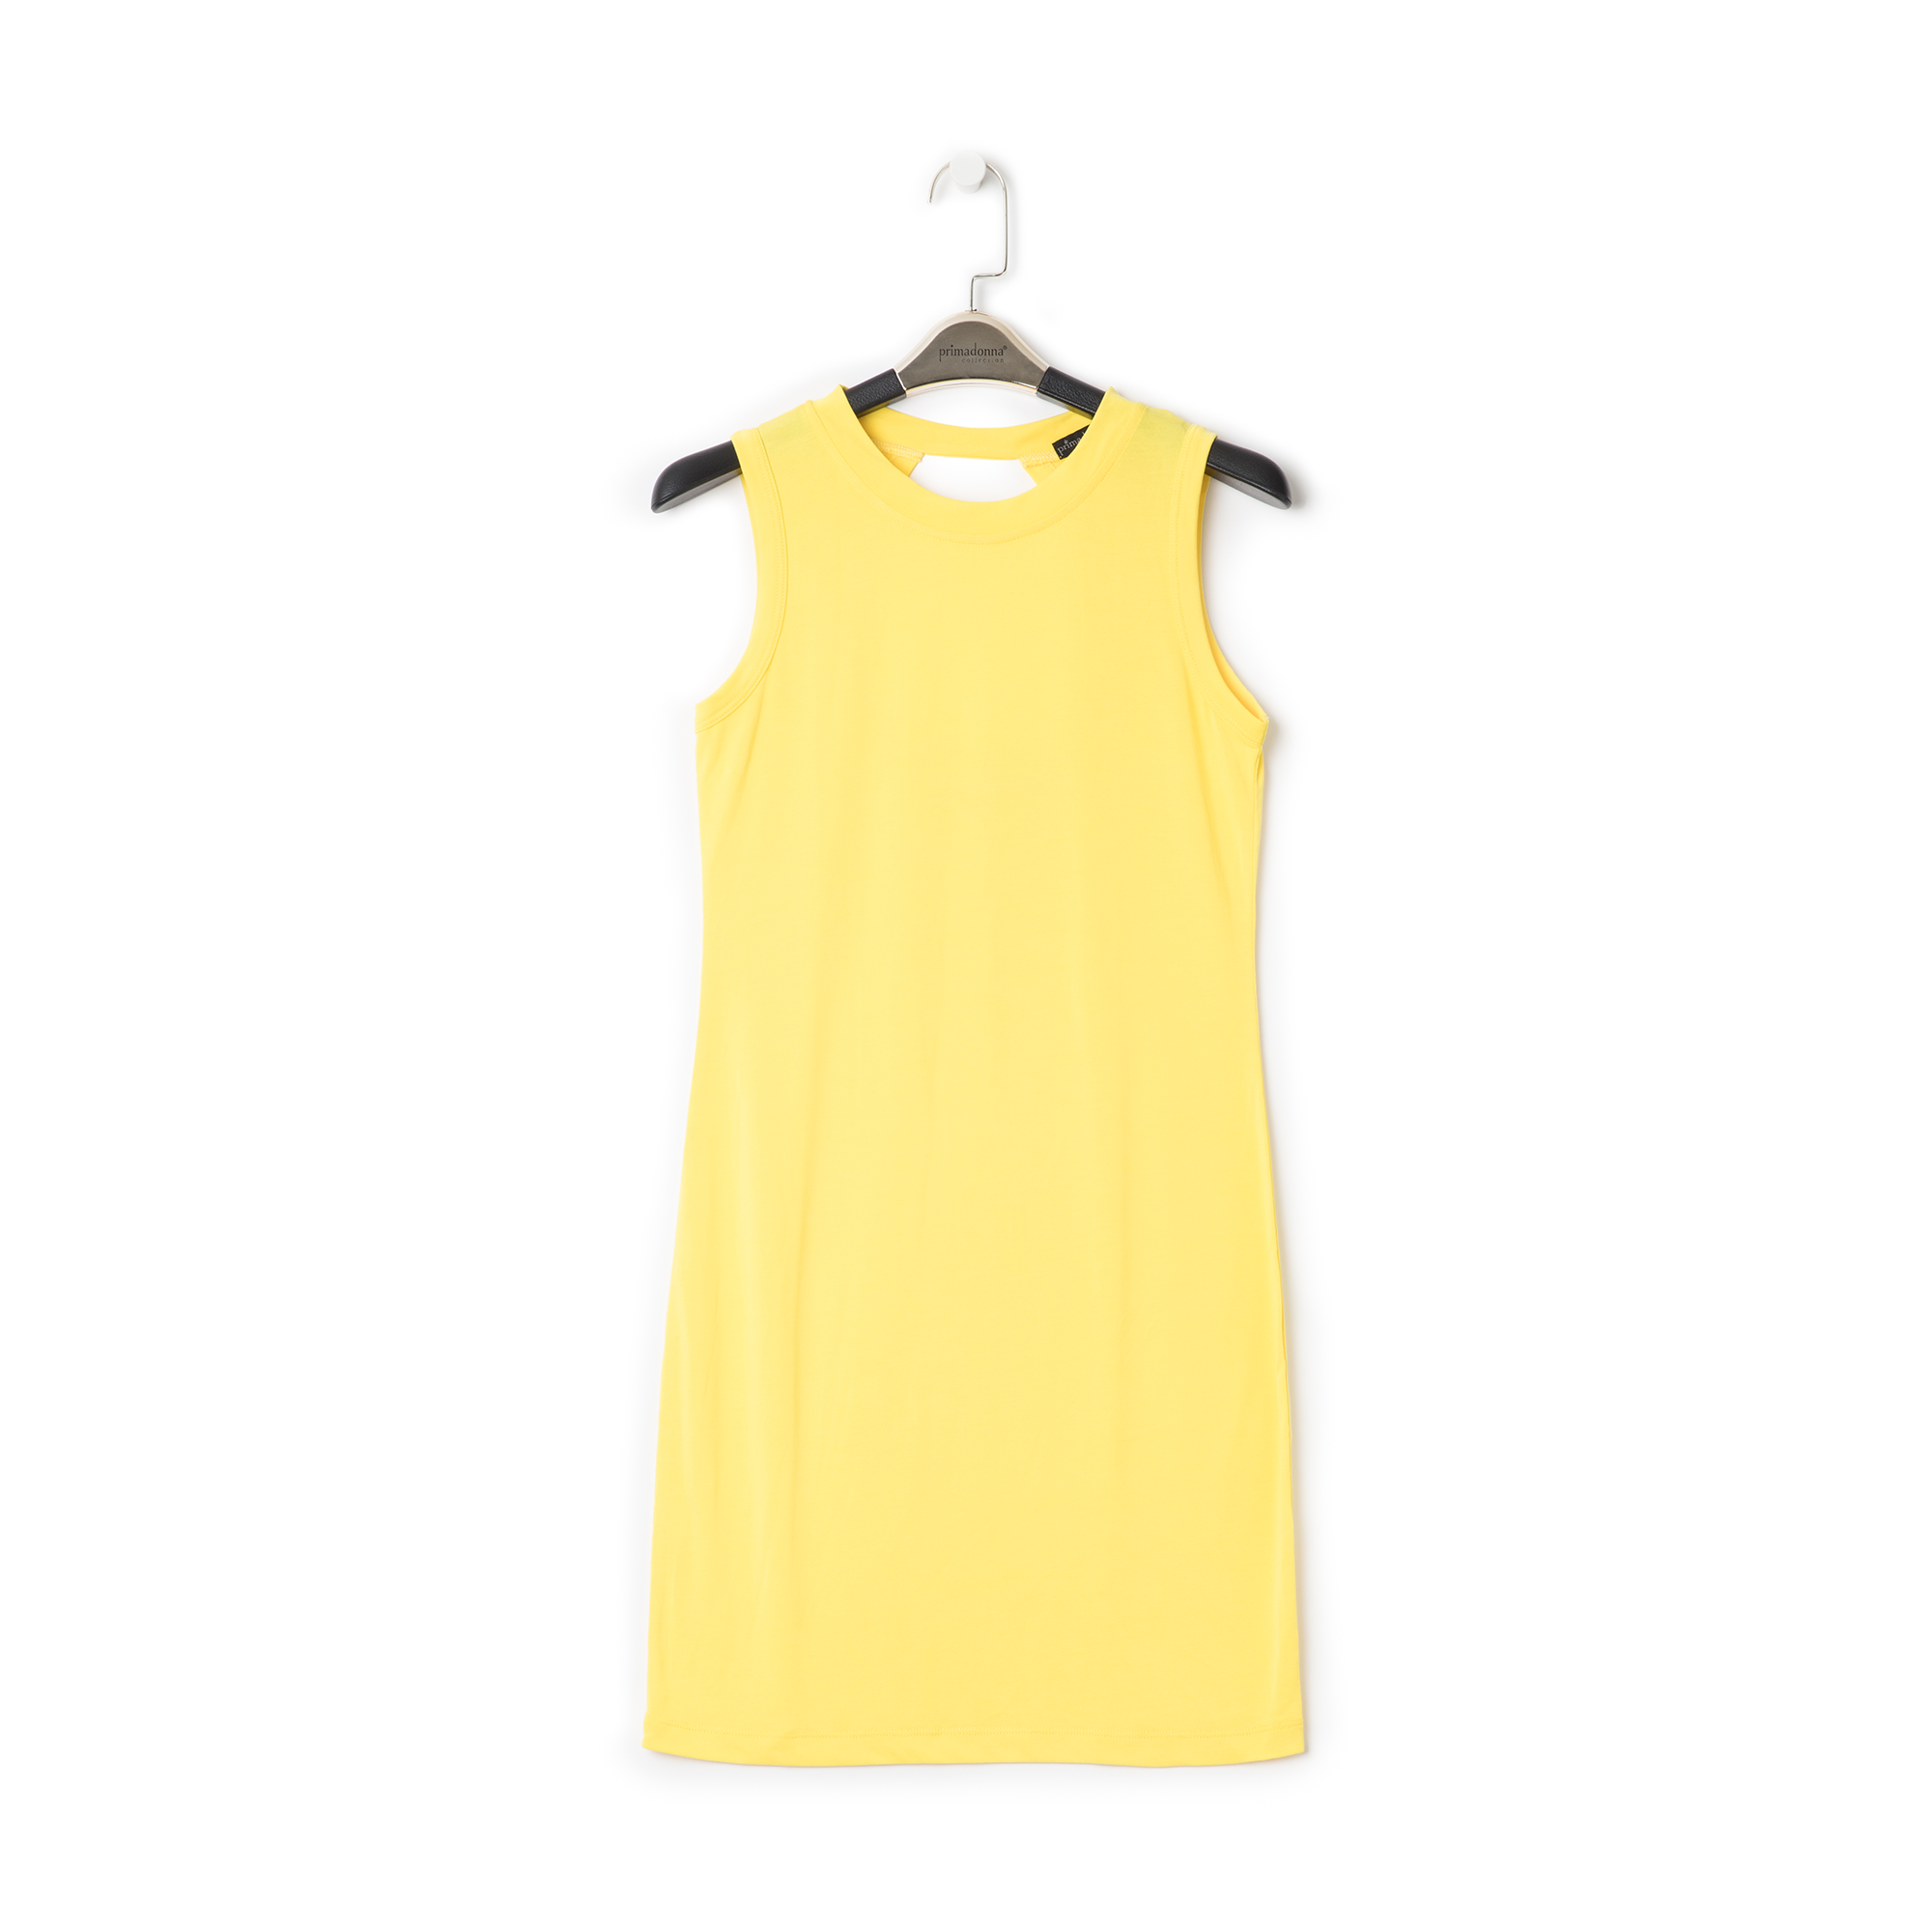 Mini-dress giallo con scollo sul retro